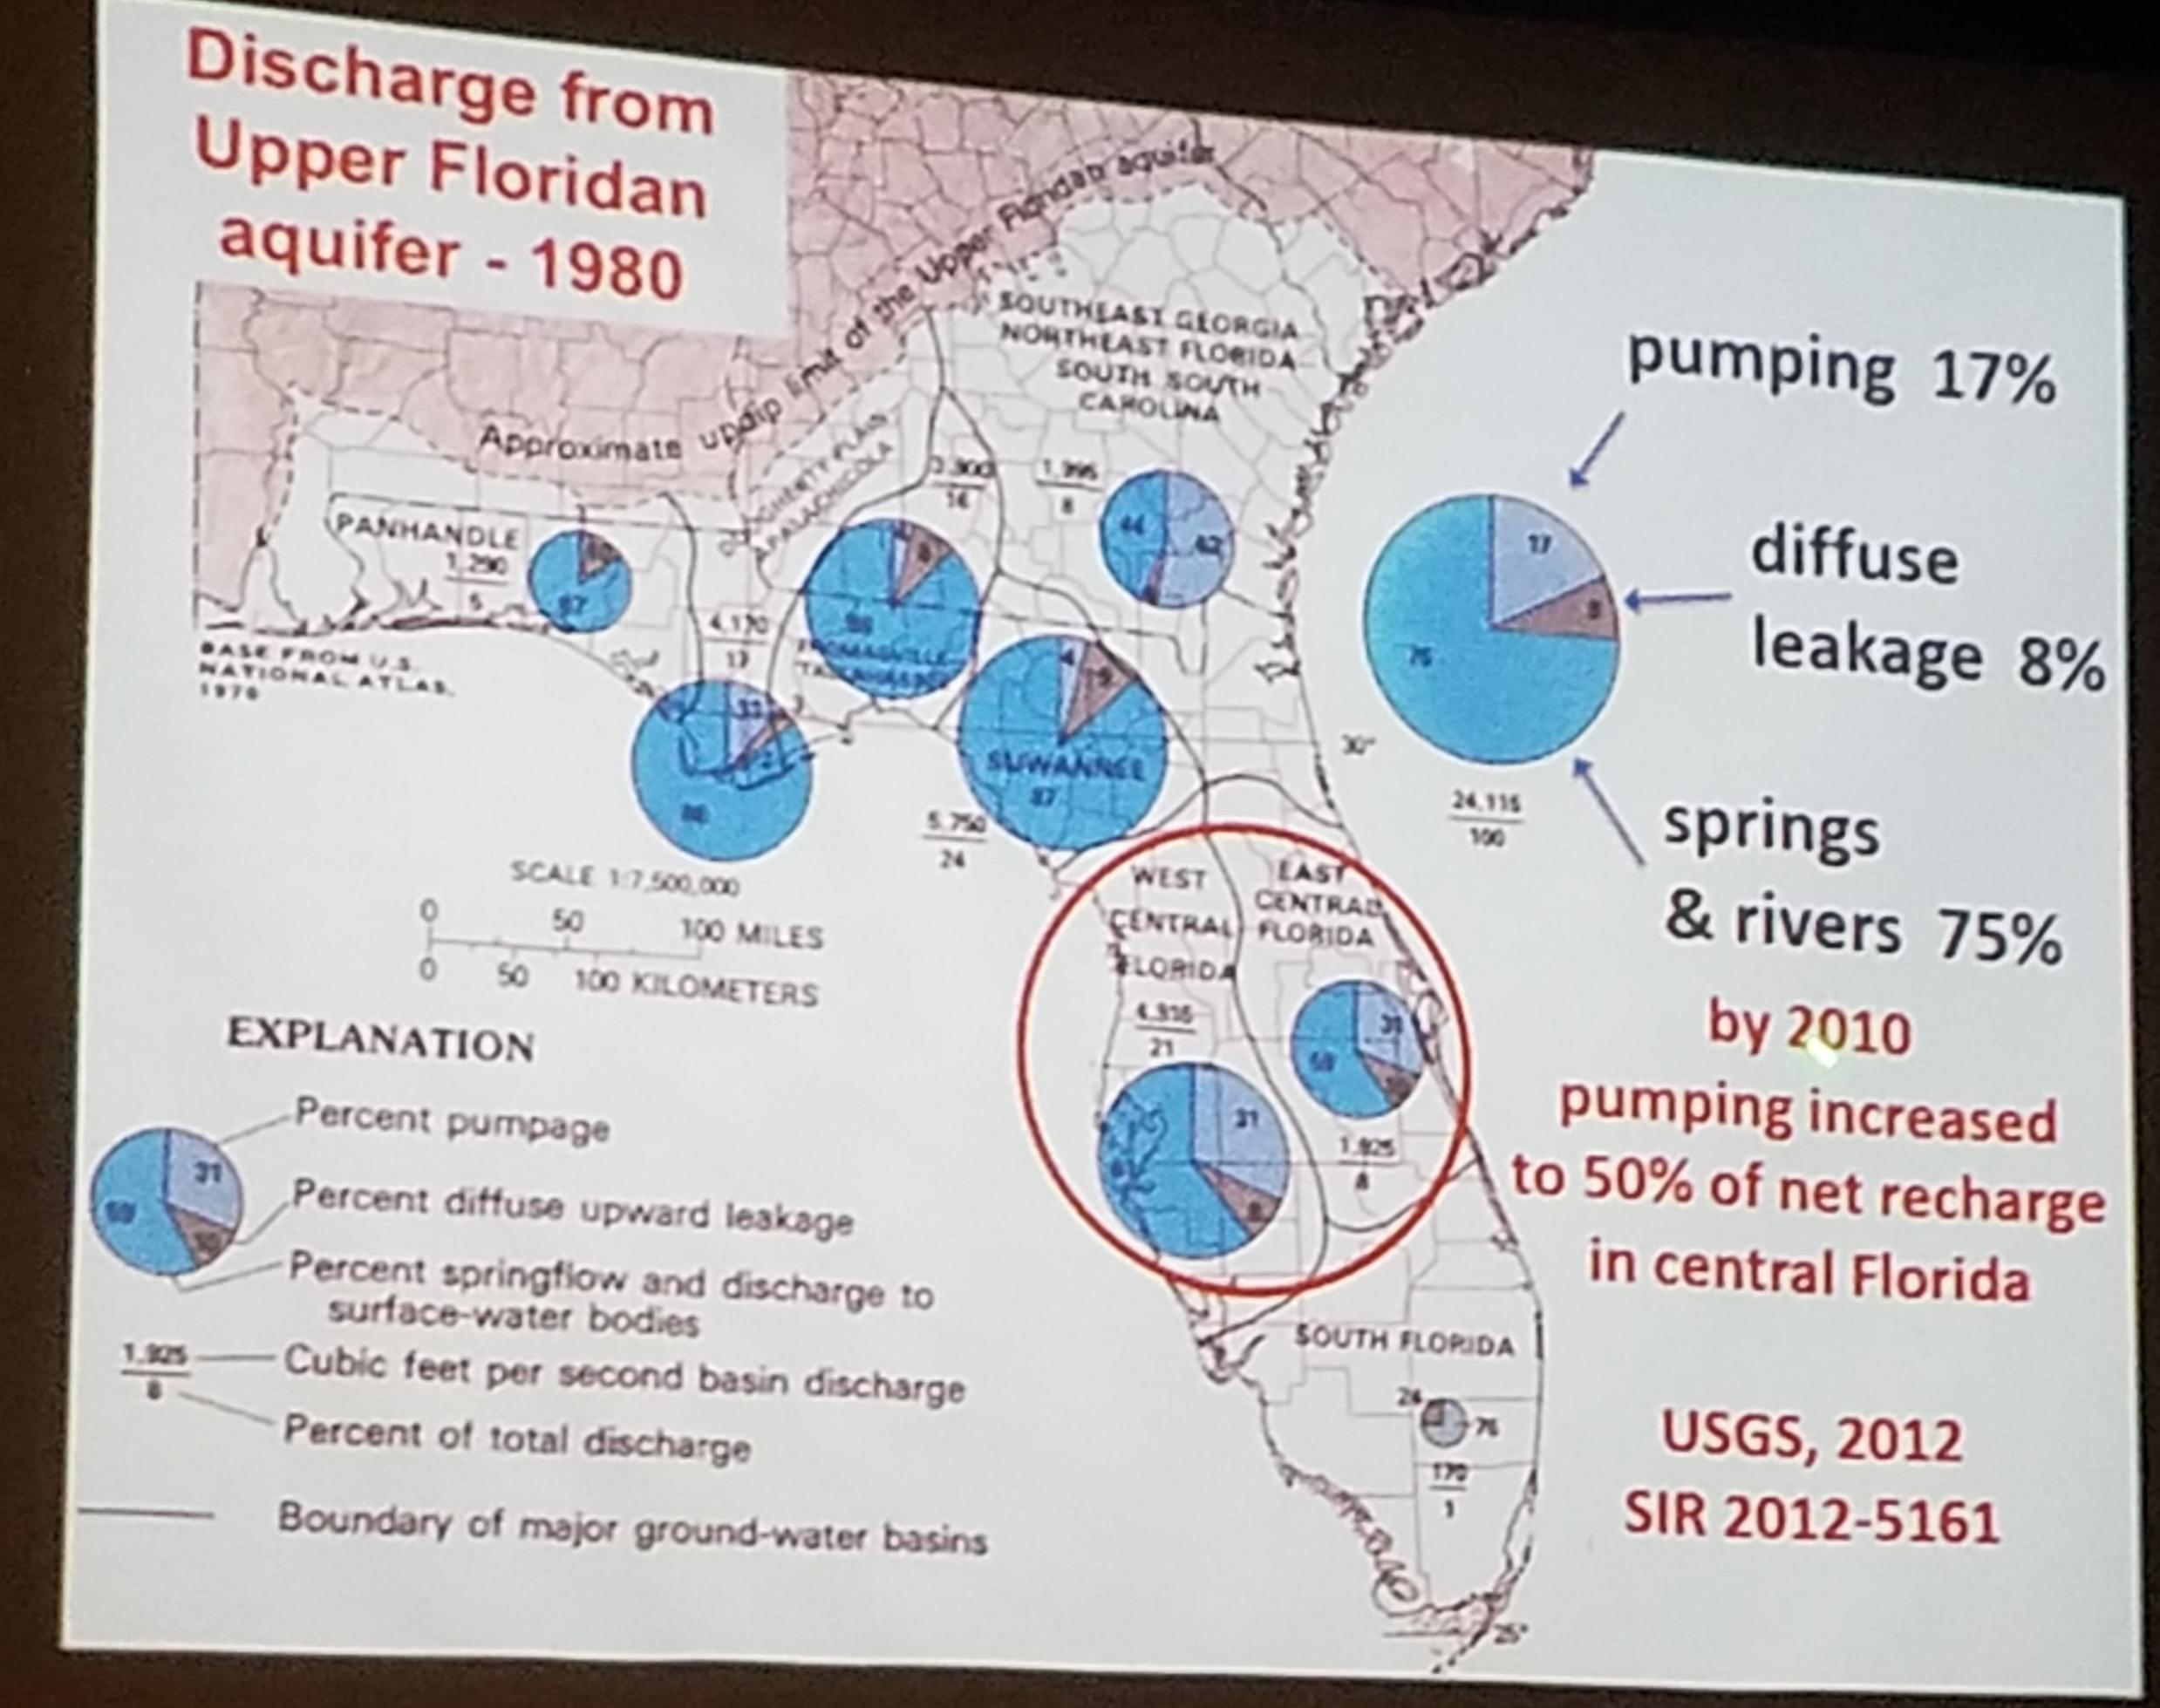 2477x1959 Discharge 1980 and 2010 from the Upper Floridan Aquifer, in Water in Florida, by Jim Gross, for WWALS.net, 17 June 2017